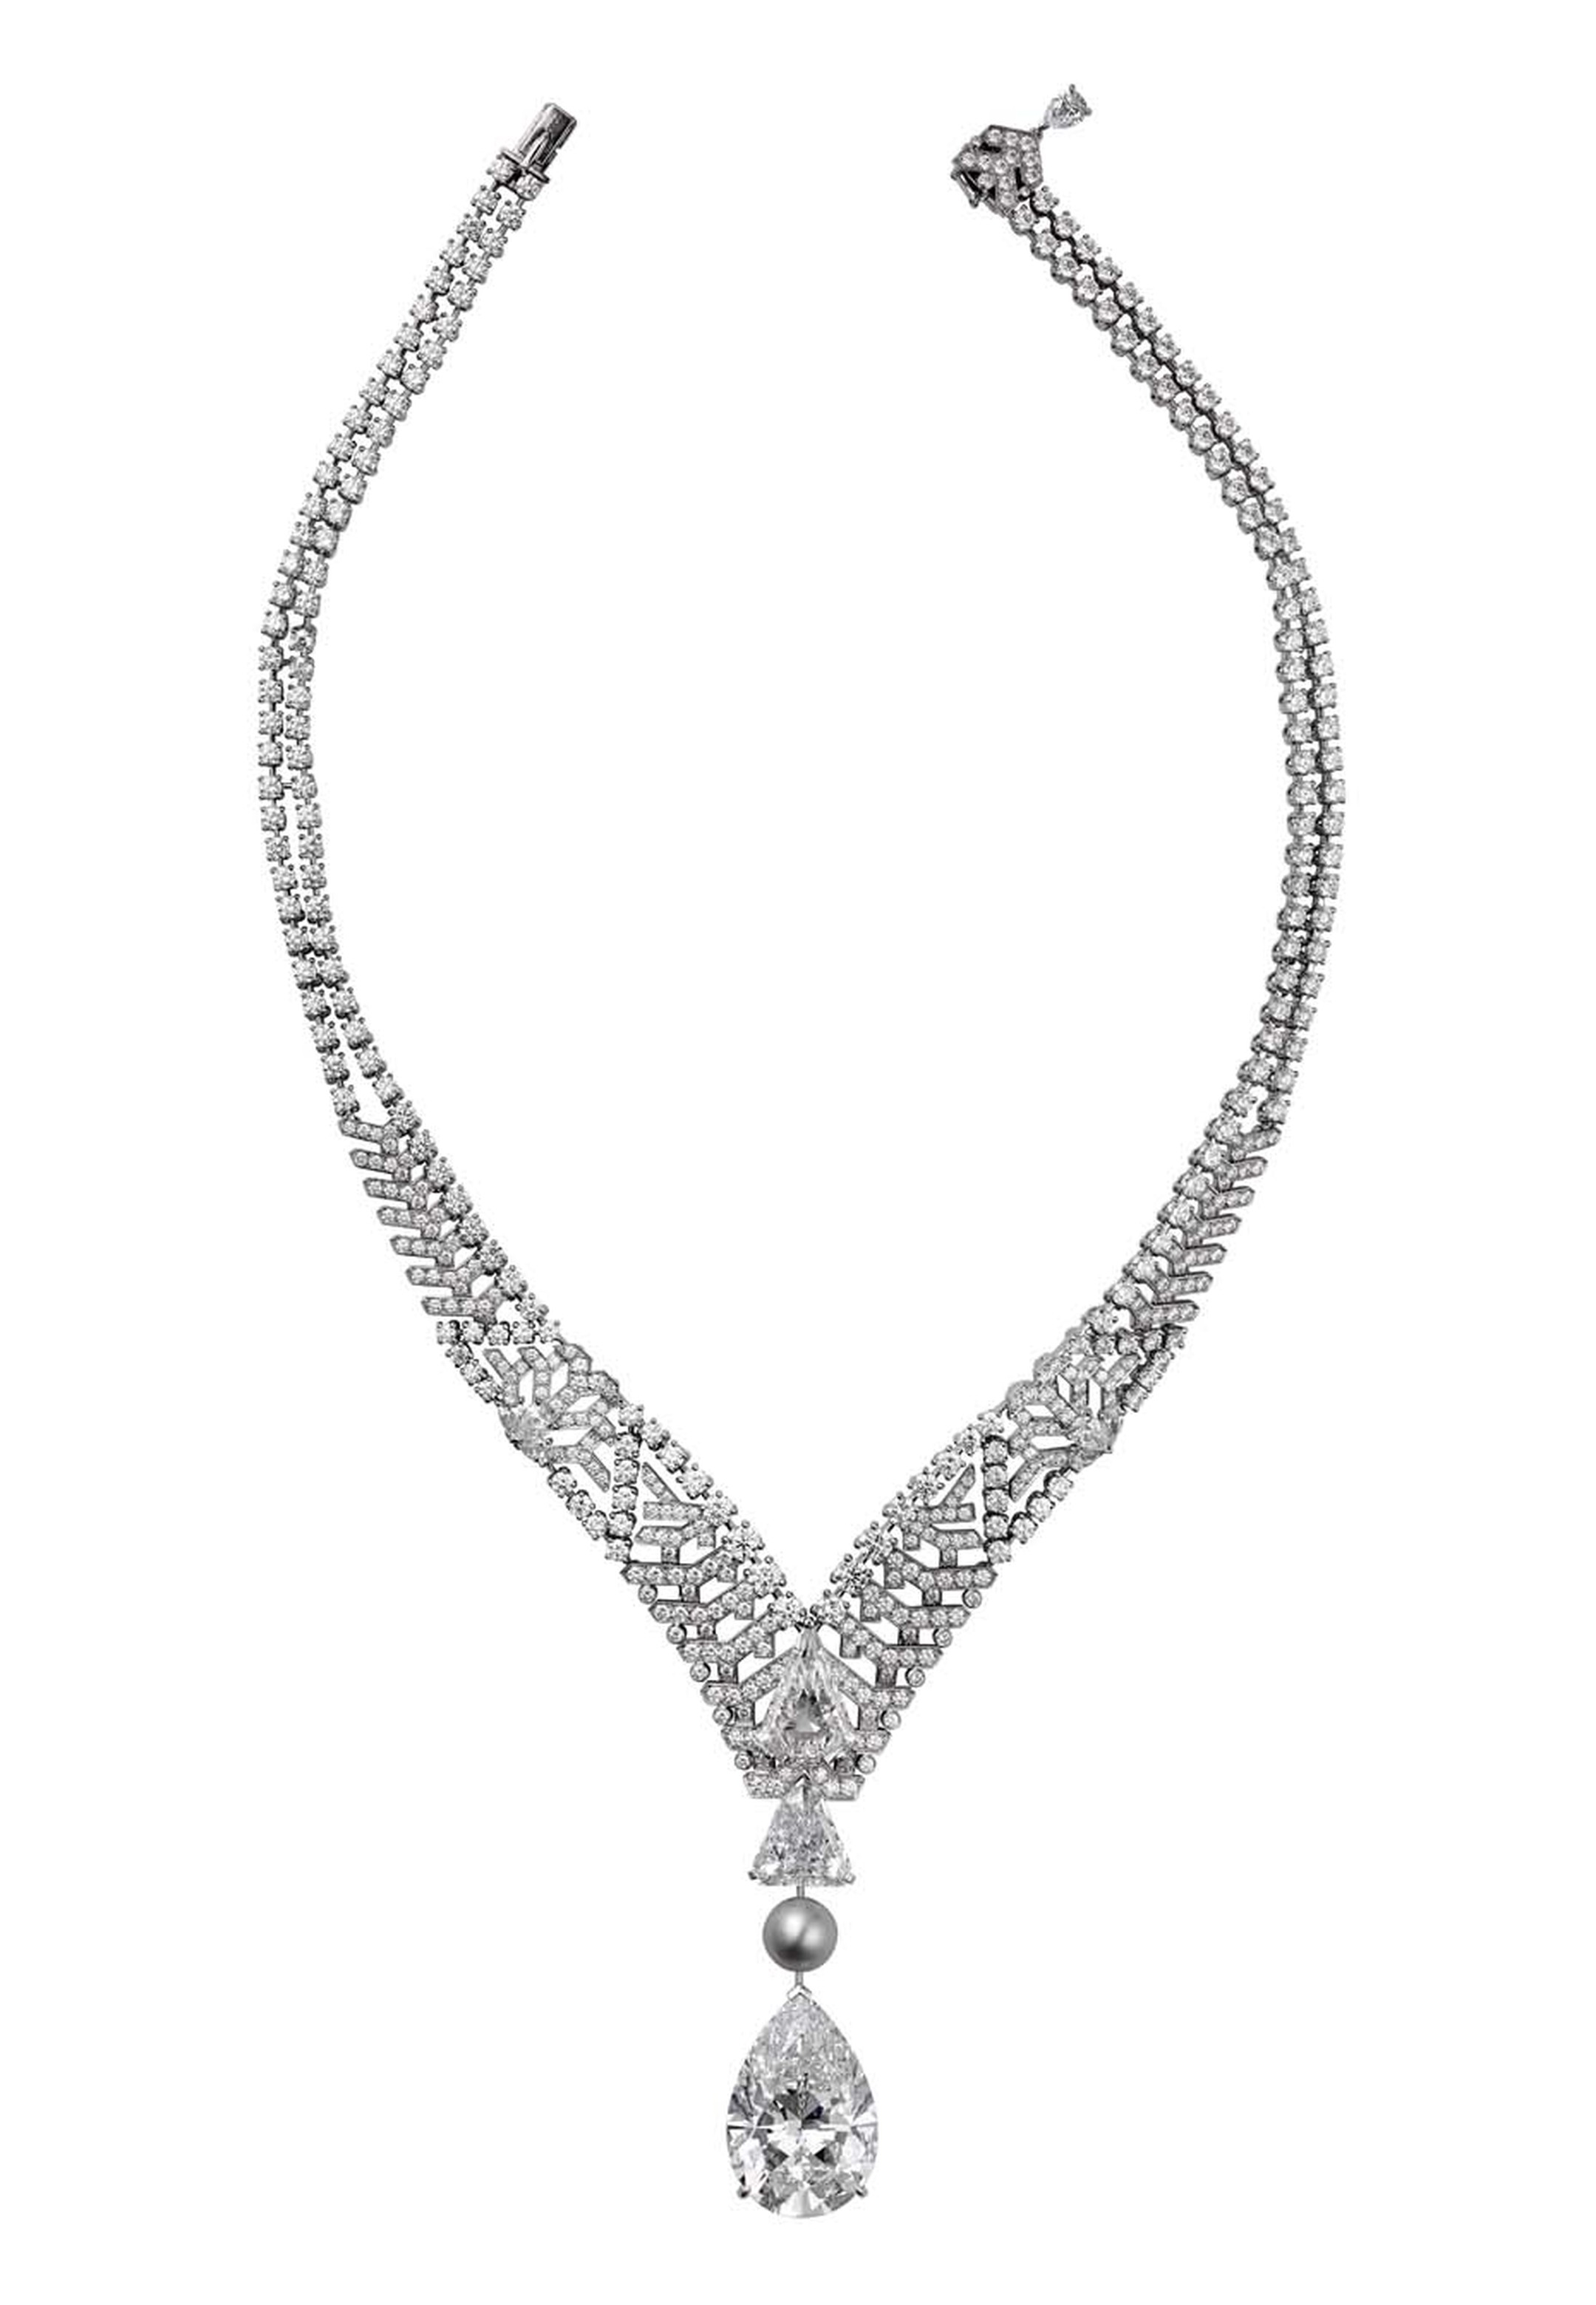 Cartier's Royal Collection diamond necklace featuring a perfectly flawless (D IF Internally Flawless Type IIa) 30ct diamond.